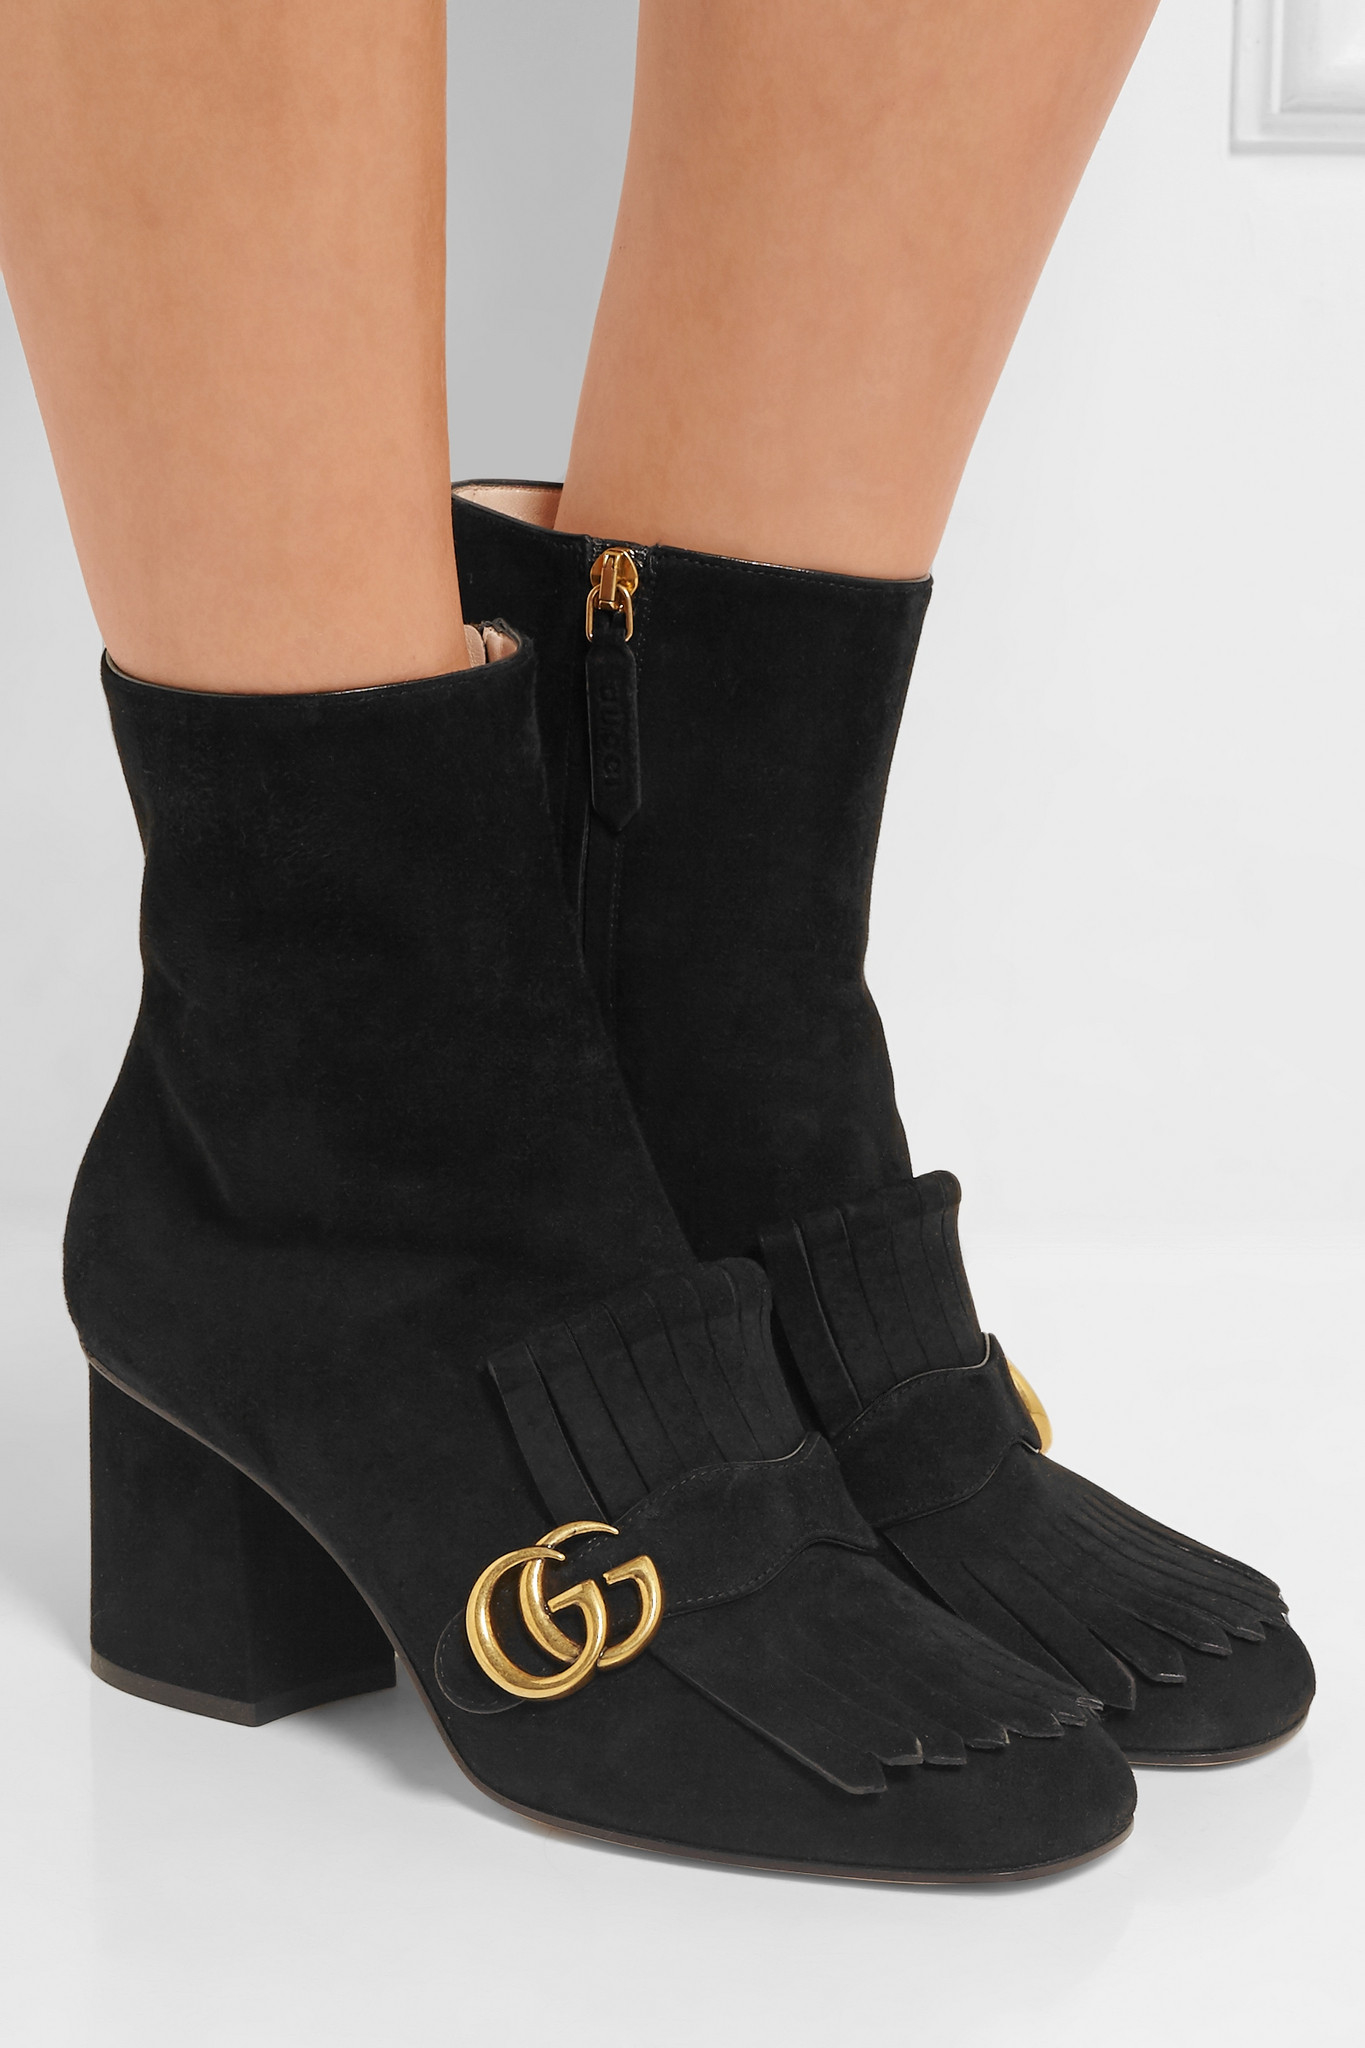 Lyst  Gucci Fringed Suede Ankle Boots in Black